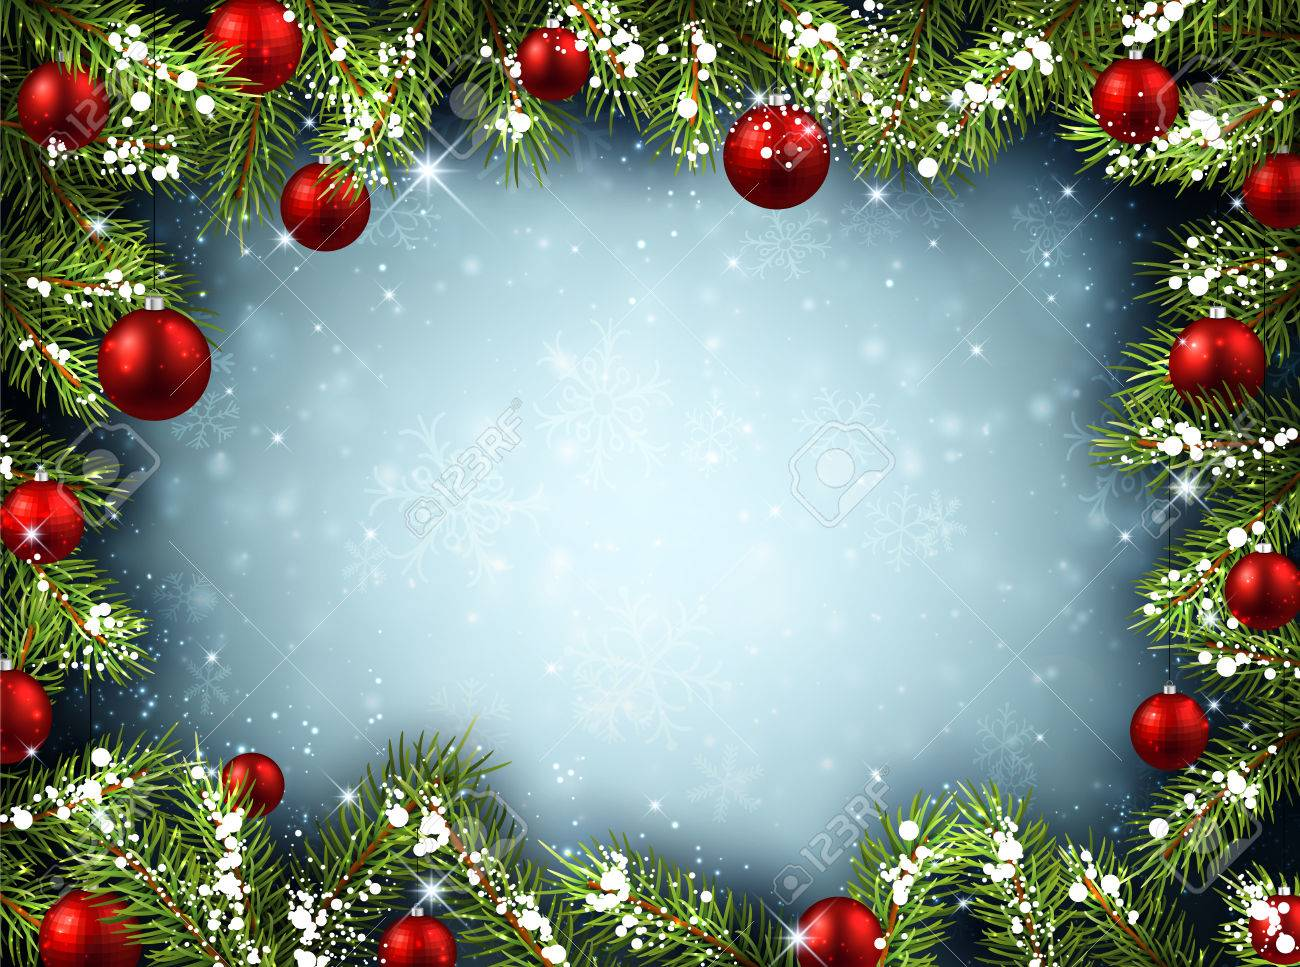 Christmas Background Pic.Christmas Background With Fir Branches And Balls Vector Illustration